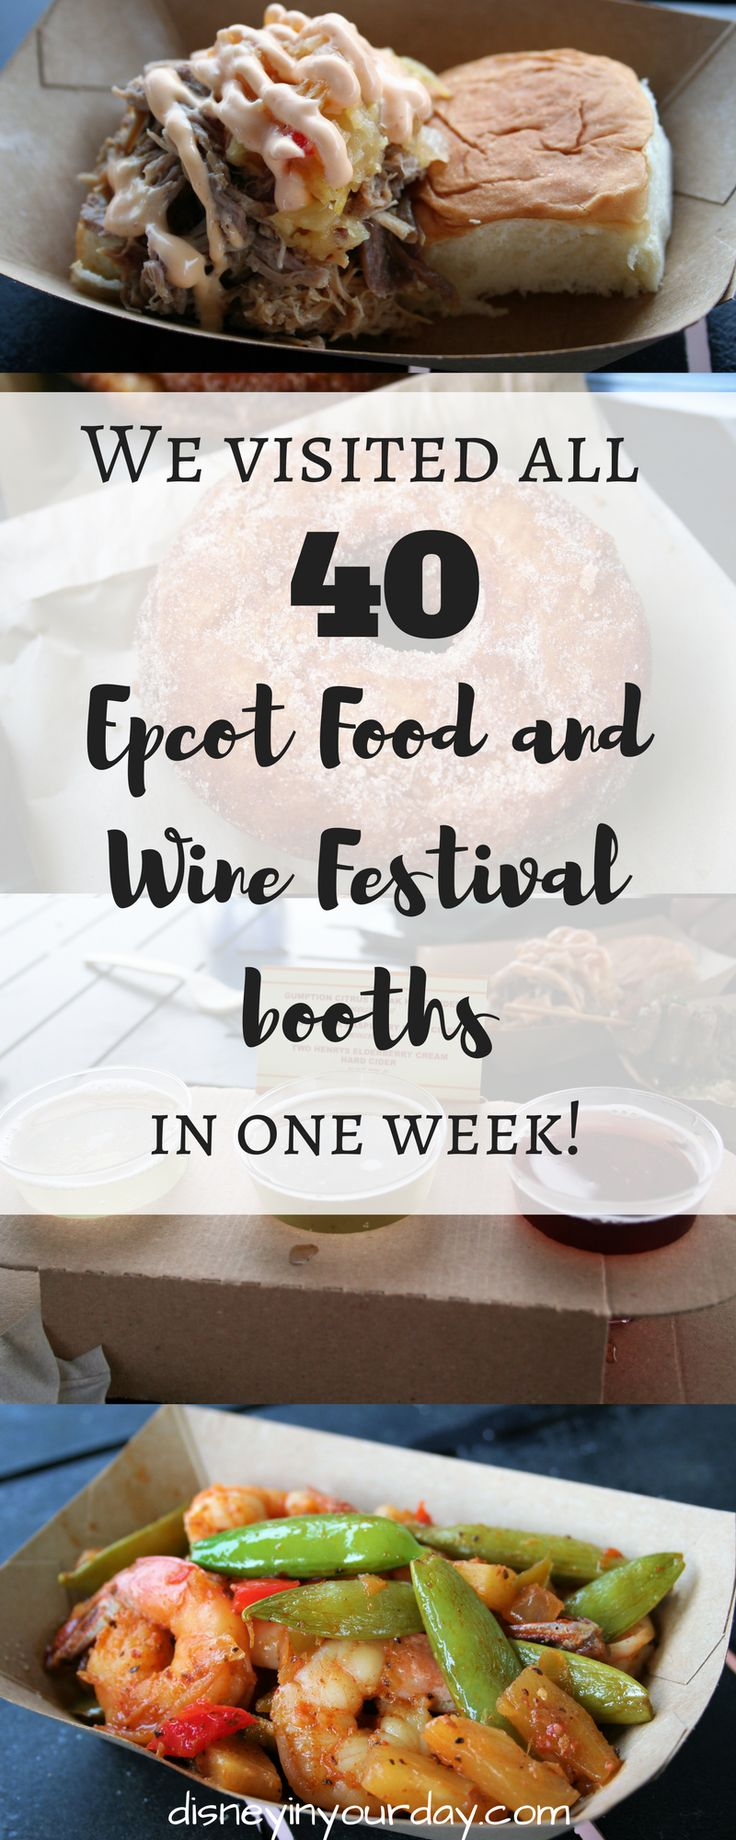 Food and Wine booths: Islands of the Caribbean, Refreshment Port, New Zealand, Australia, The Almond Orchard, Patagonia, Hawaii, Farm Fresh, Greece, Thailand - Disney in your Day